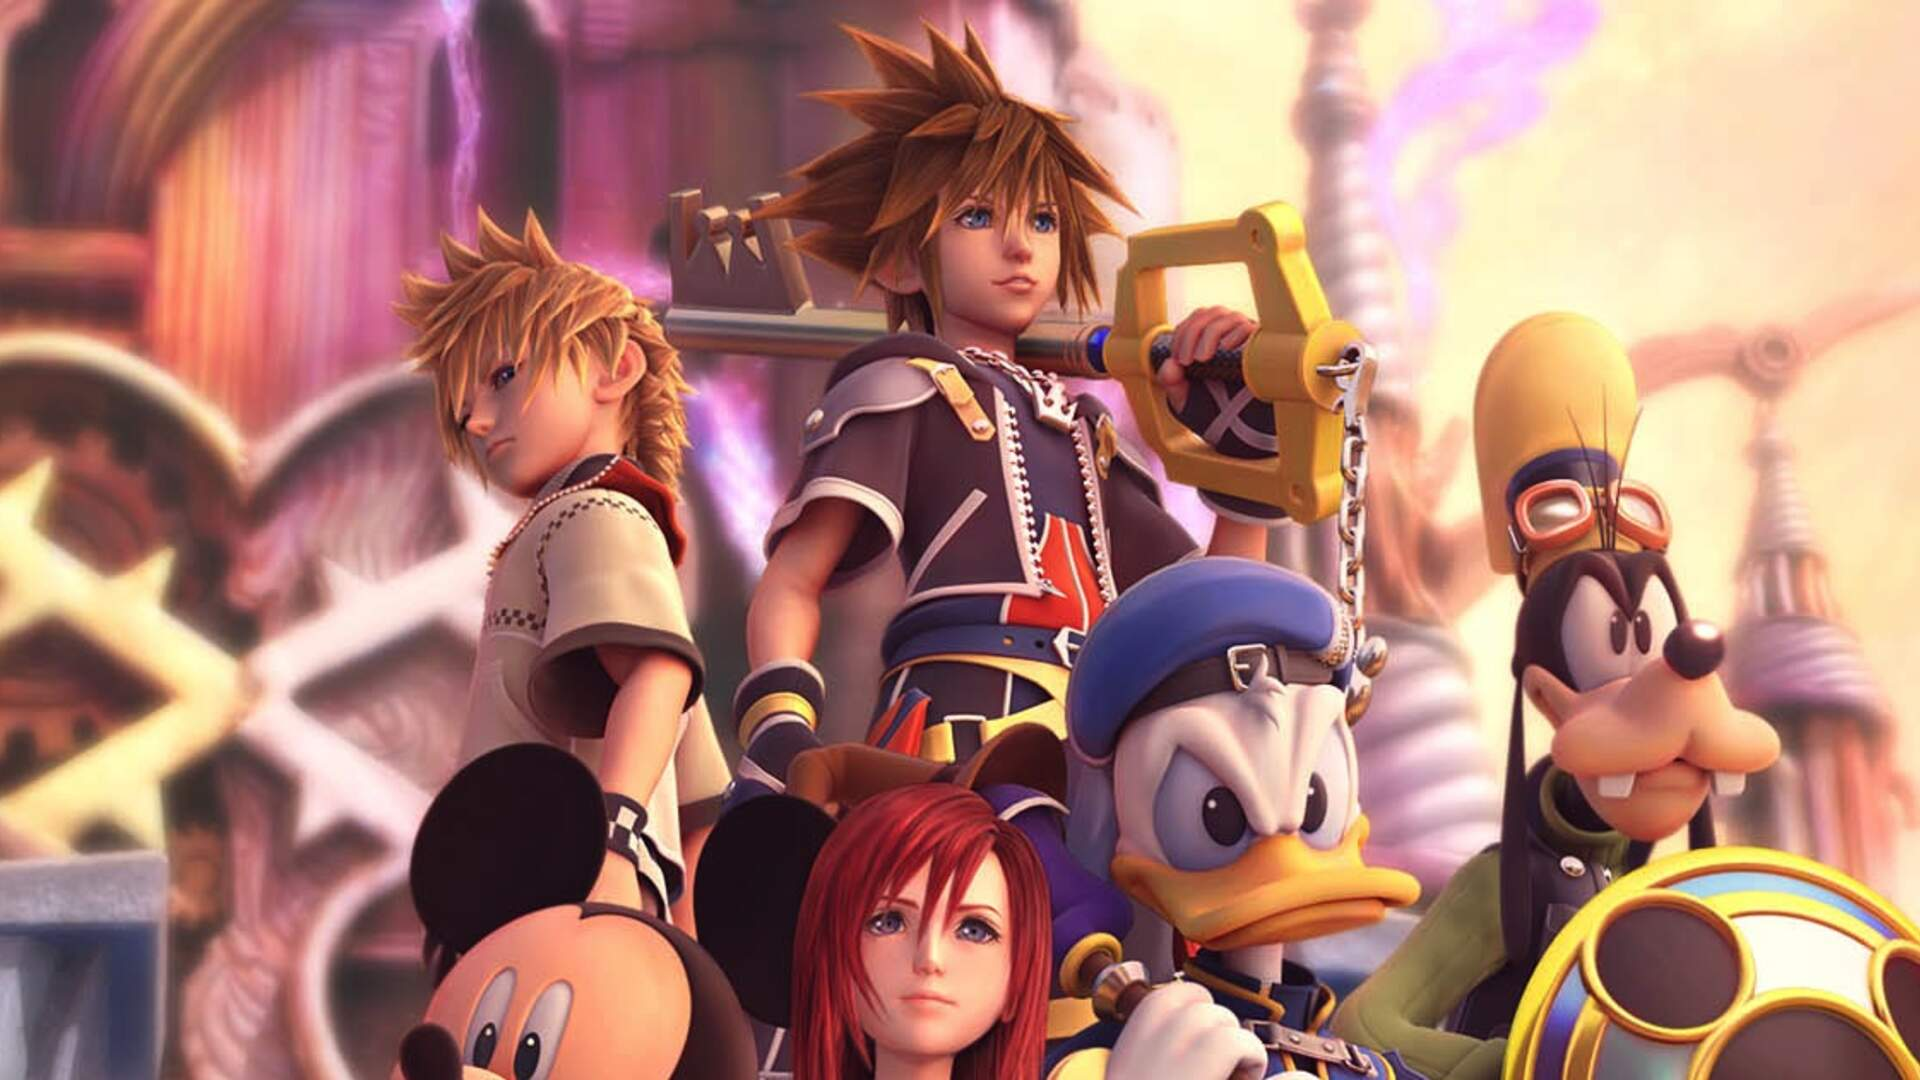 Kingdom Hearts HD 2.5 ReMIX Coming to PS3 in 2014